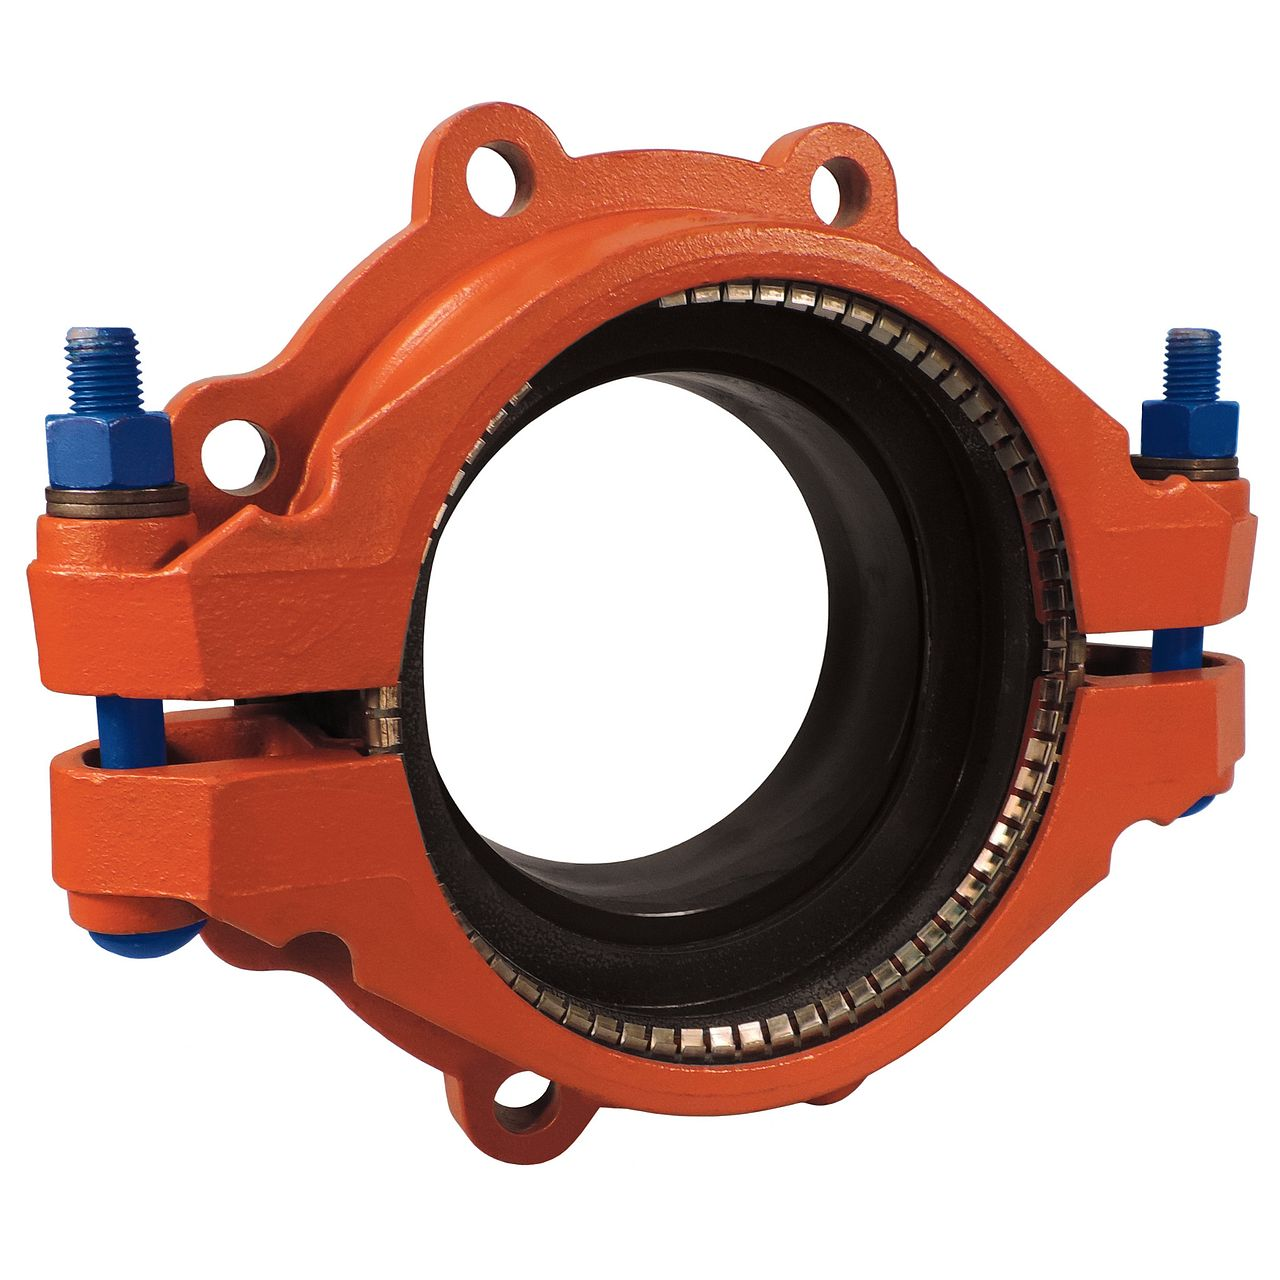 Victaulic style refuse to fuse flange adapter for hdpe